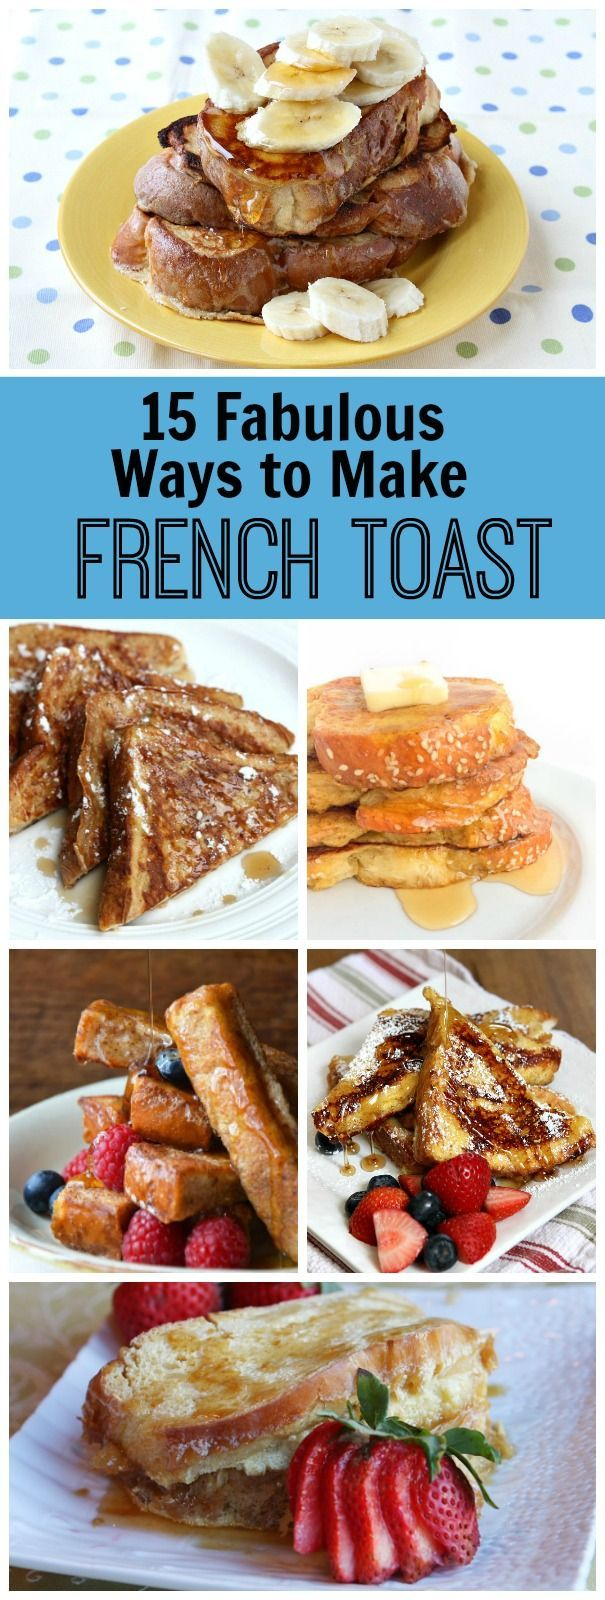 15 Fabulous Ways to Make French Toast: including Peanut Butter Banana French Toast, Classic French Toast Casserole, Creme Brulee French Toast, French Toast Waffles and more!